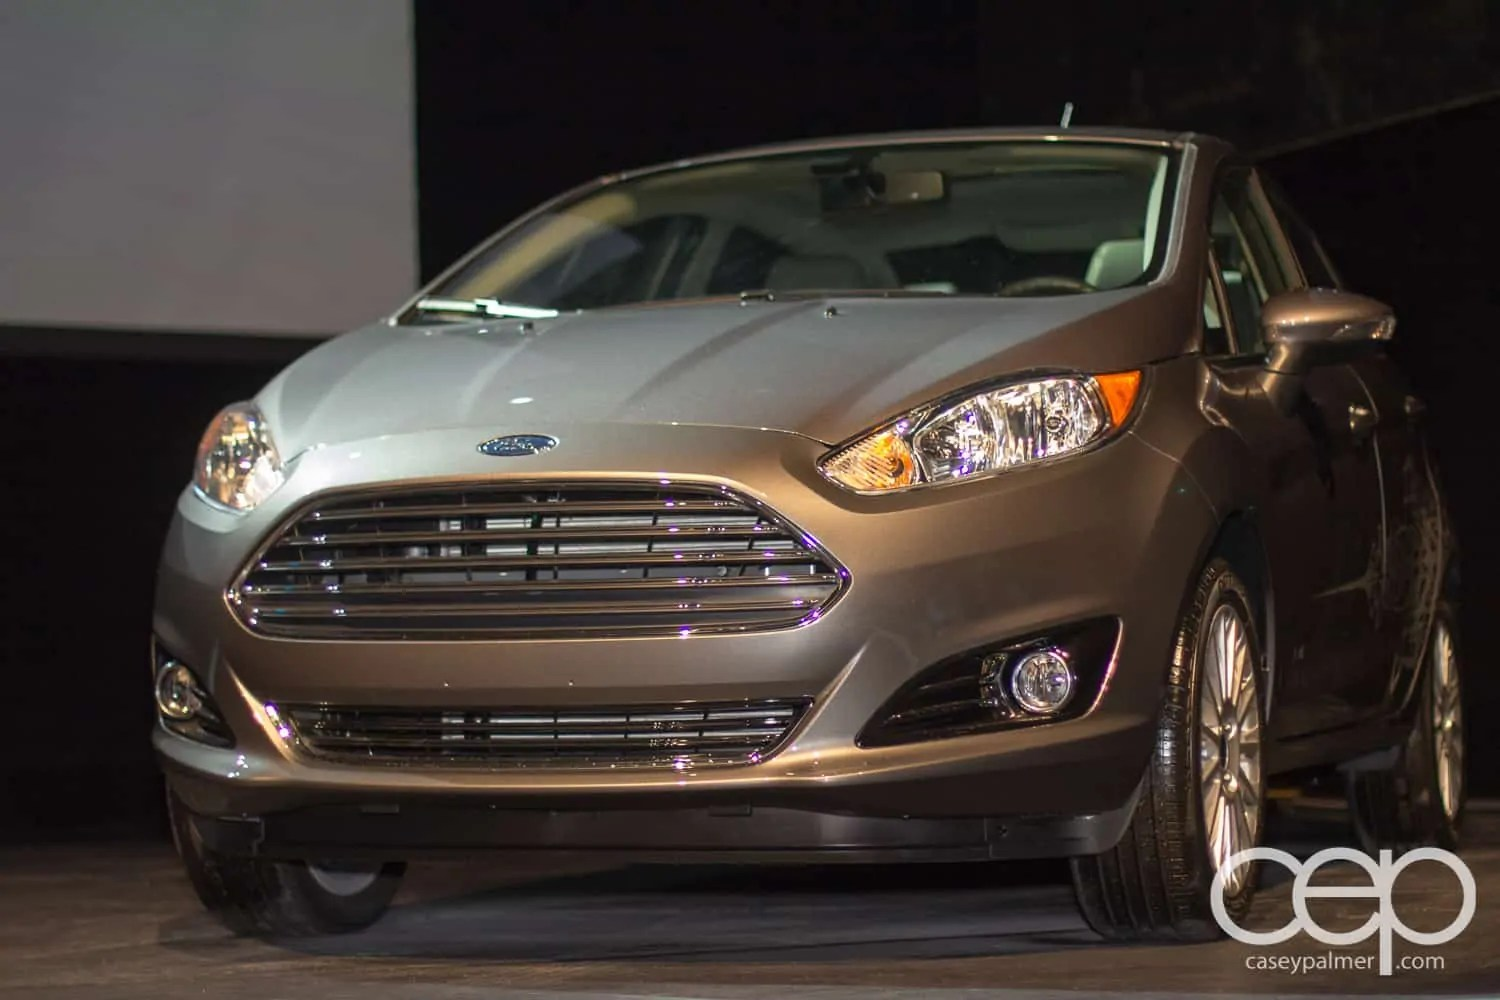 The 2014 Ford Fiesta, unveiled